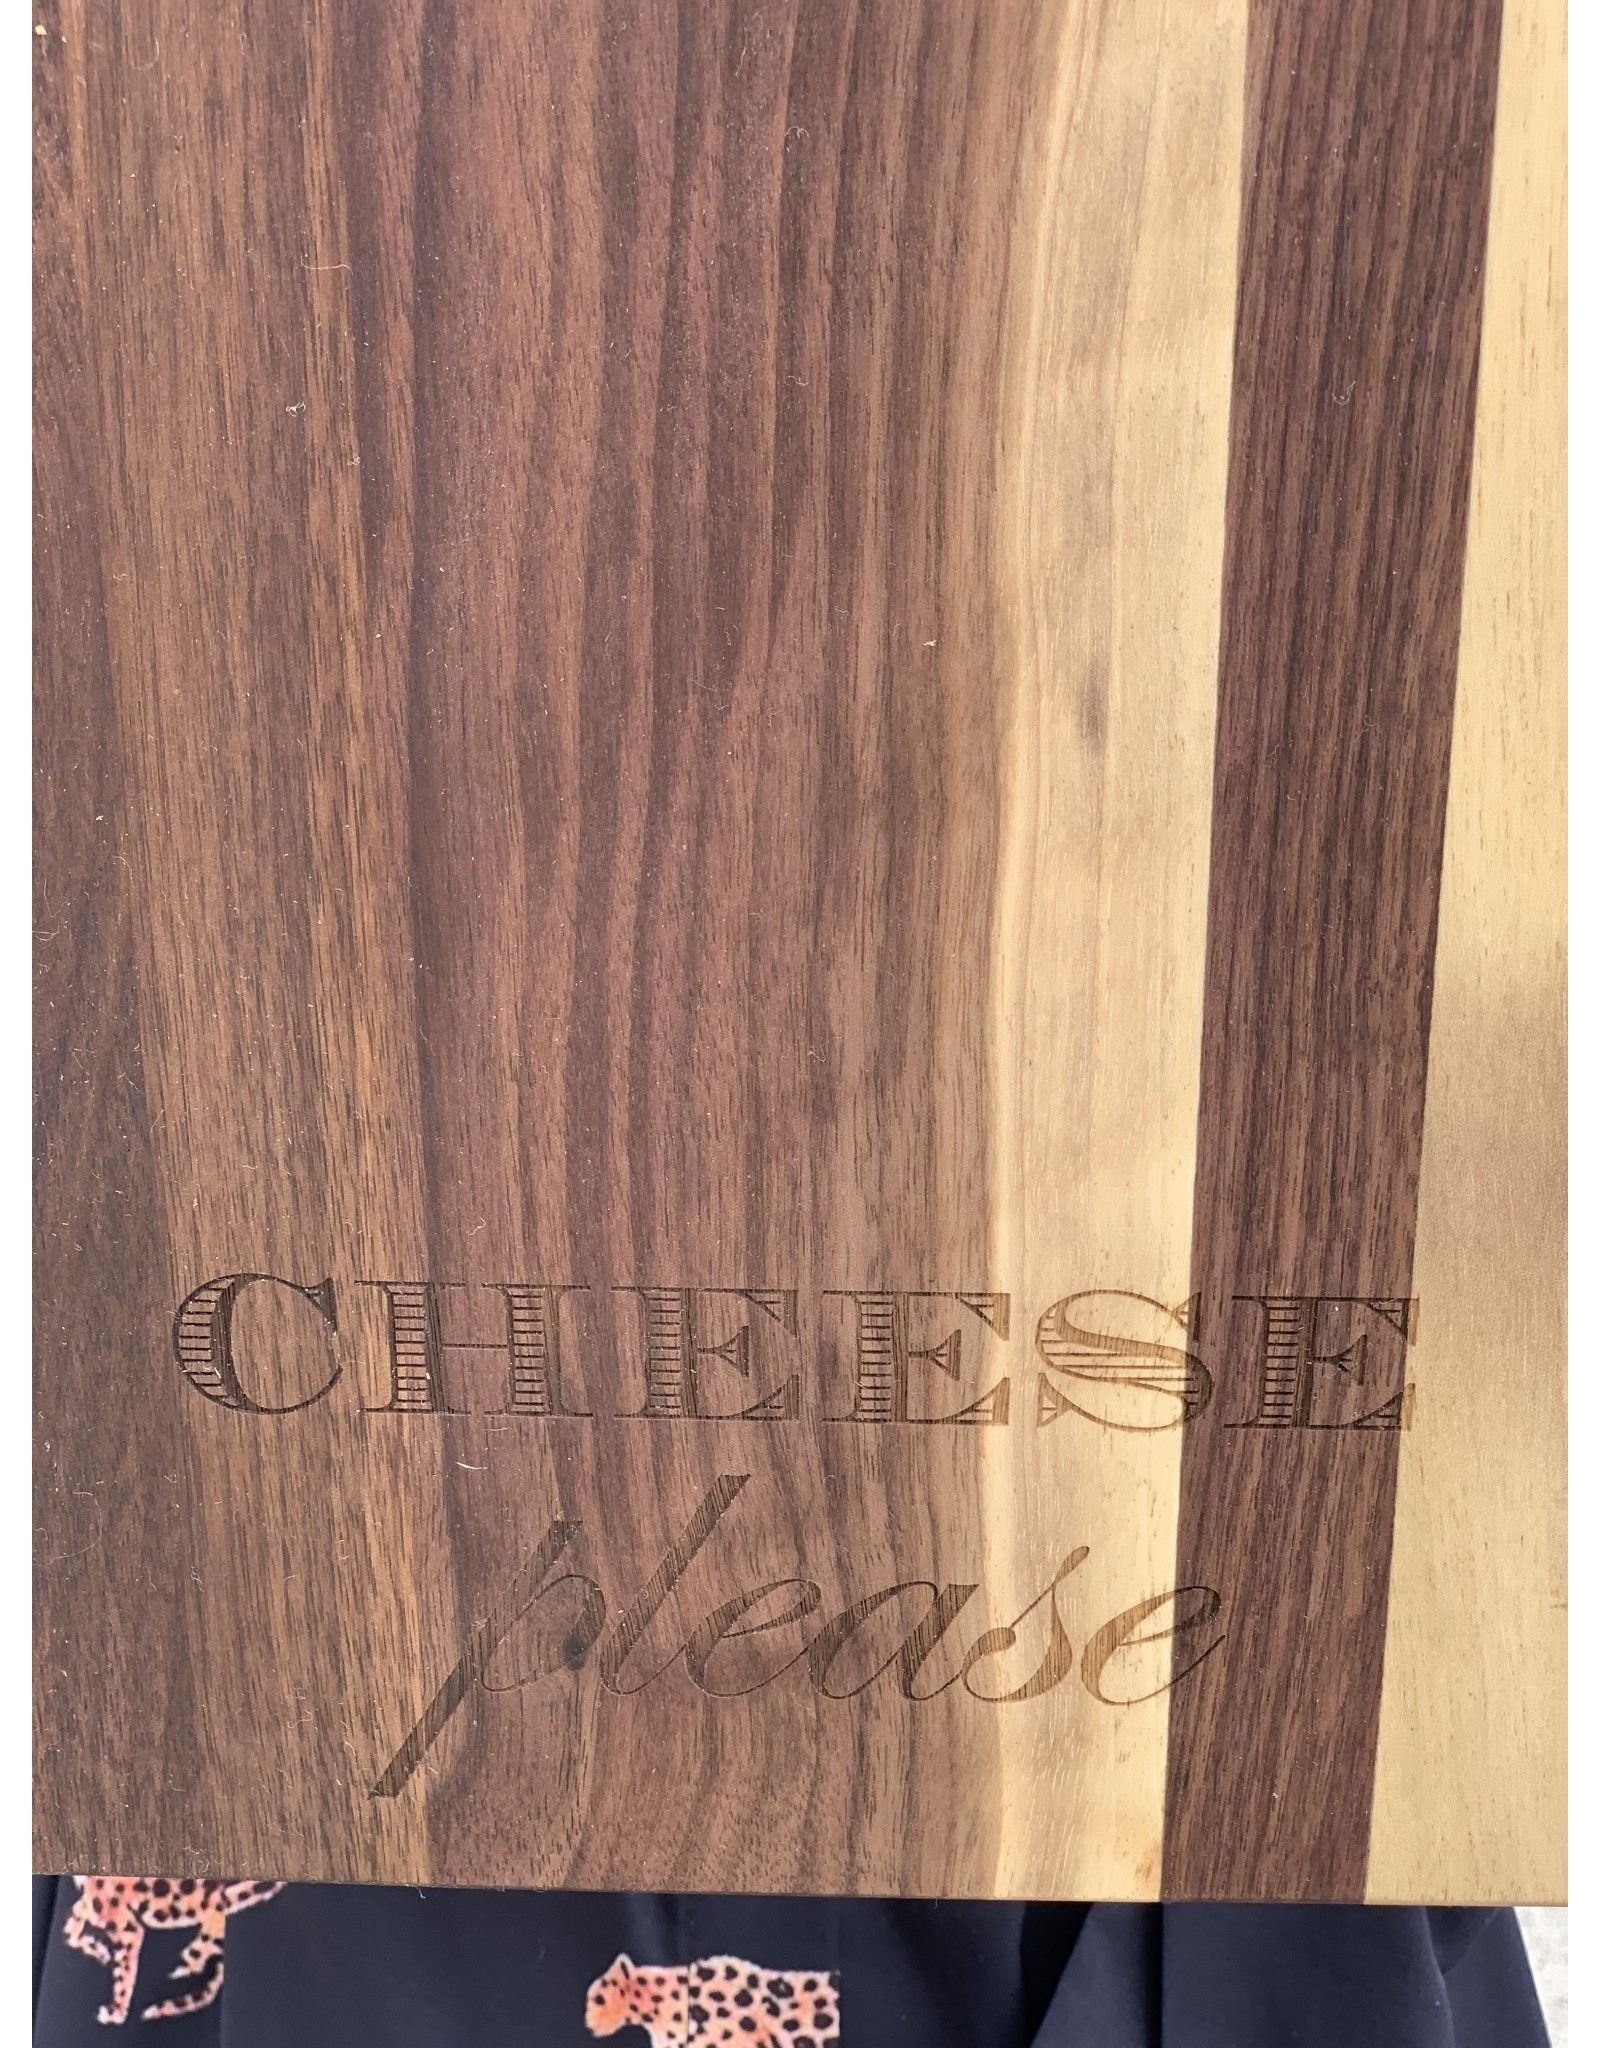 Maple Leaf at Home Cheese Please 24x12 Walnut Single Handle Cheese Board